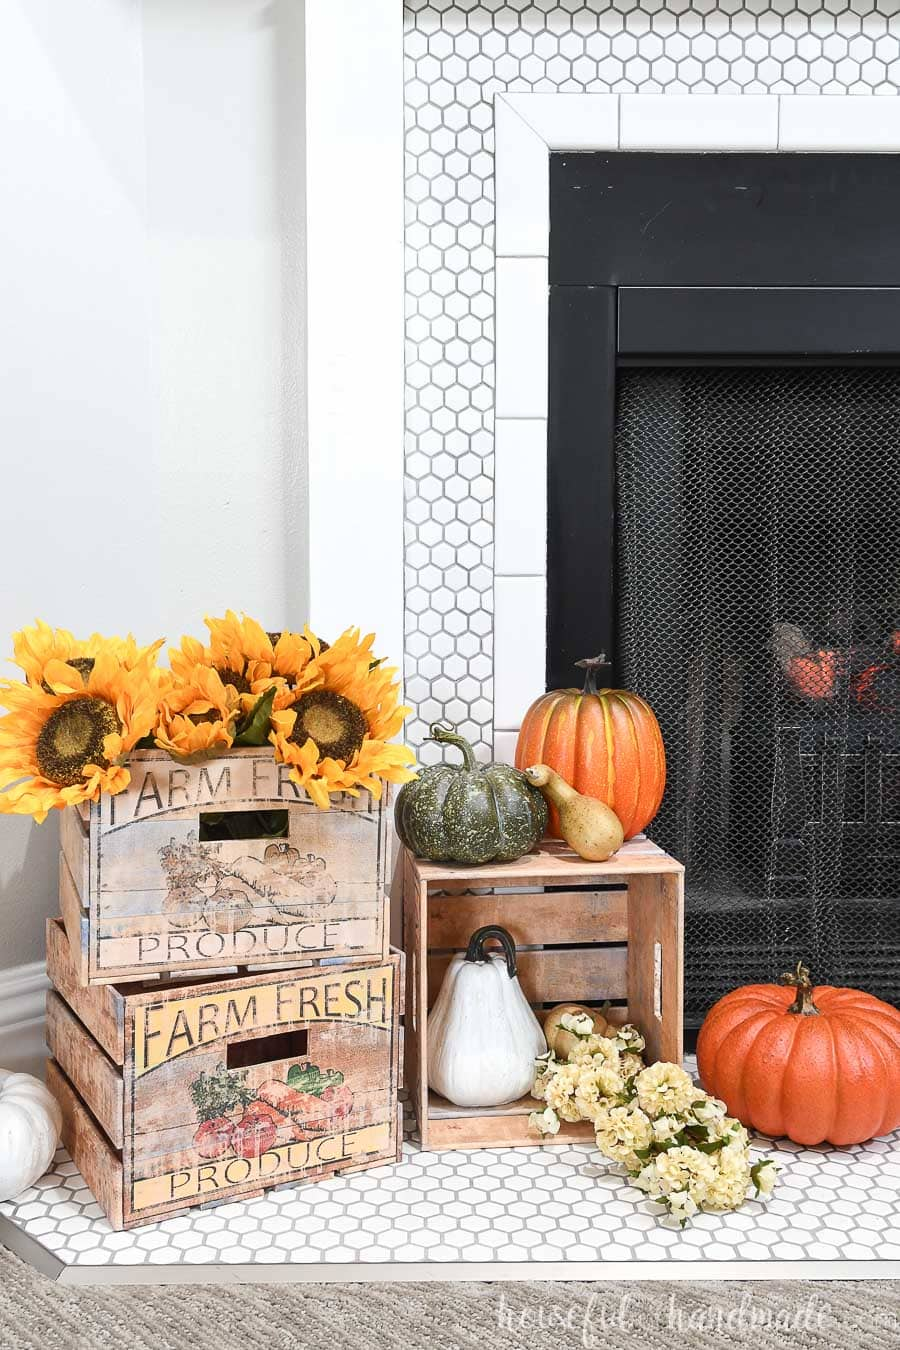 DIY decorative crates on the hearth of a fireplace decorated for fall.